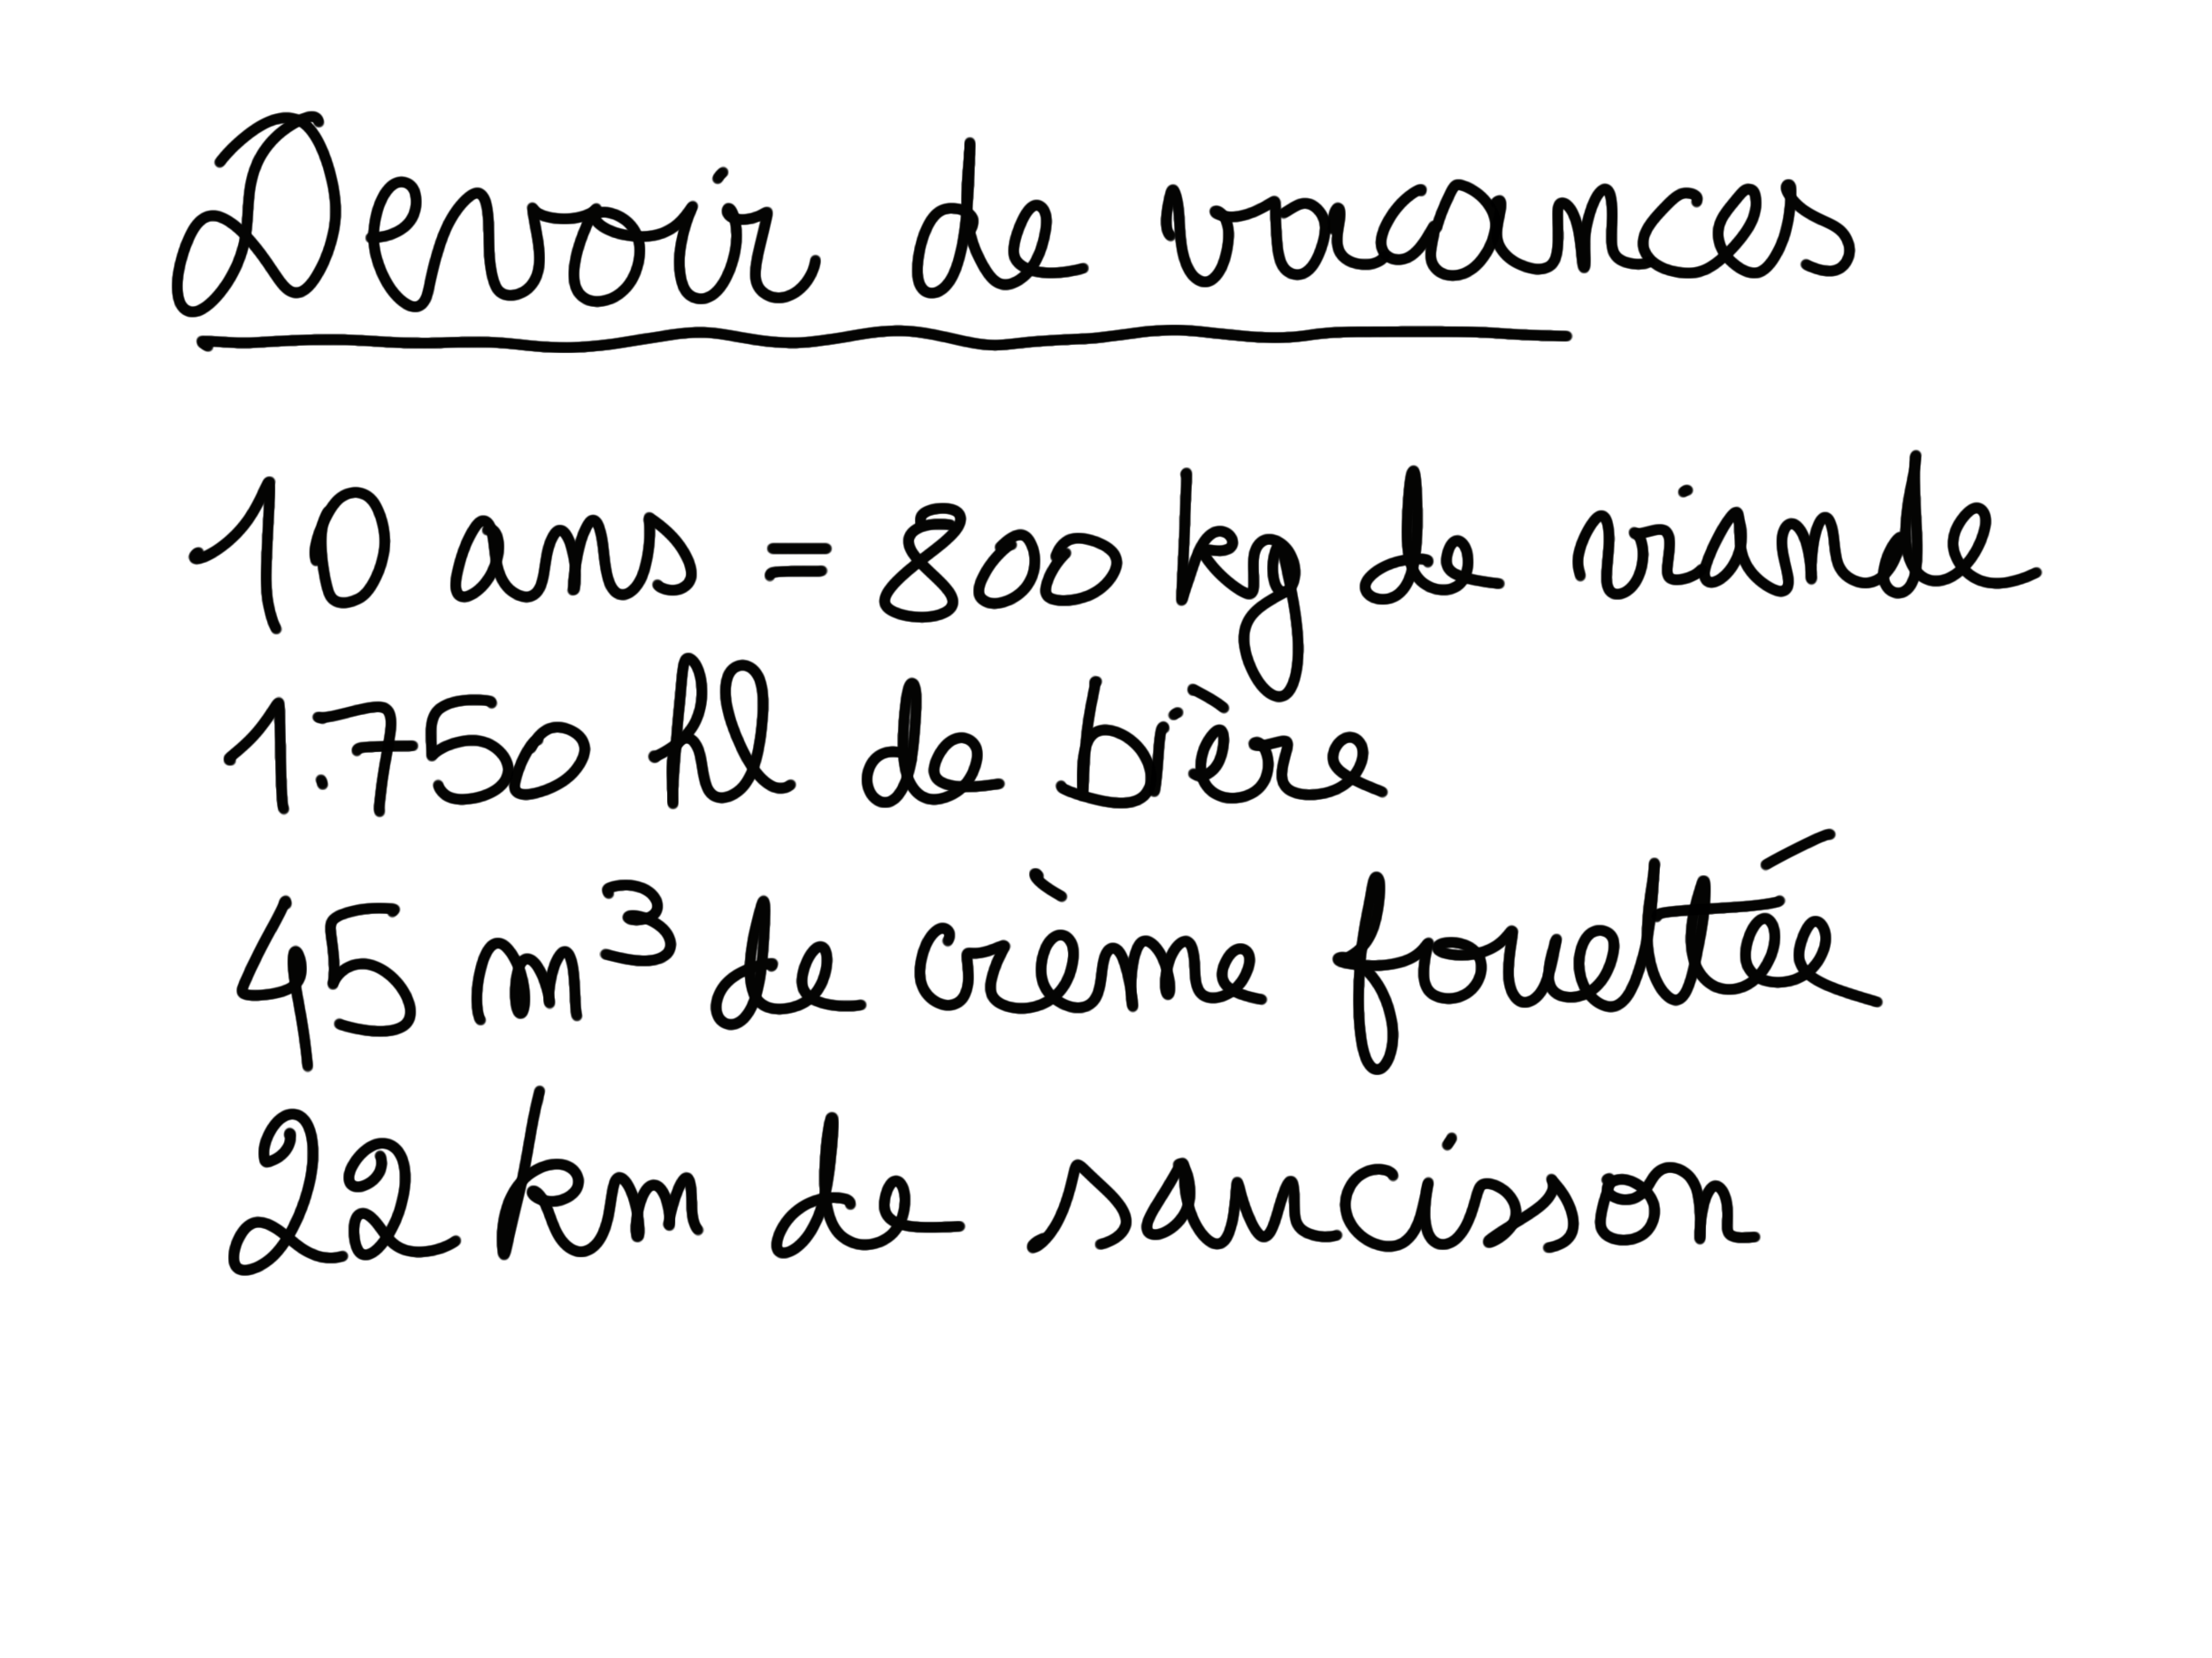 Fichier 2-09-19 12 52 01.png